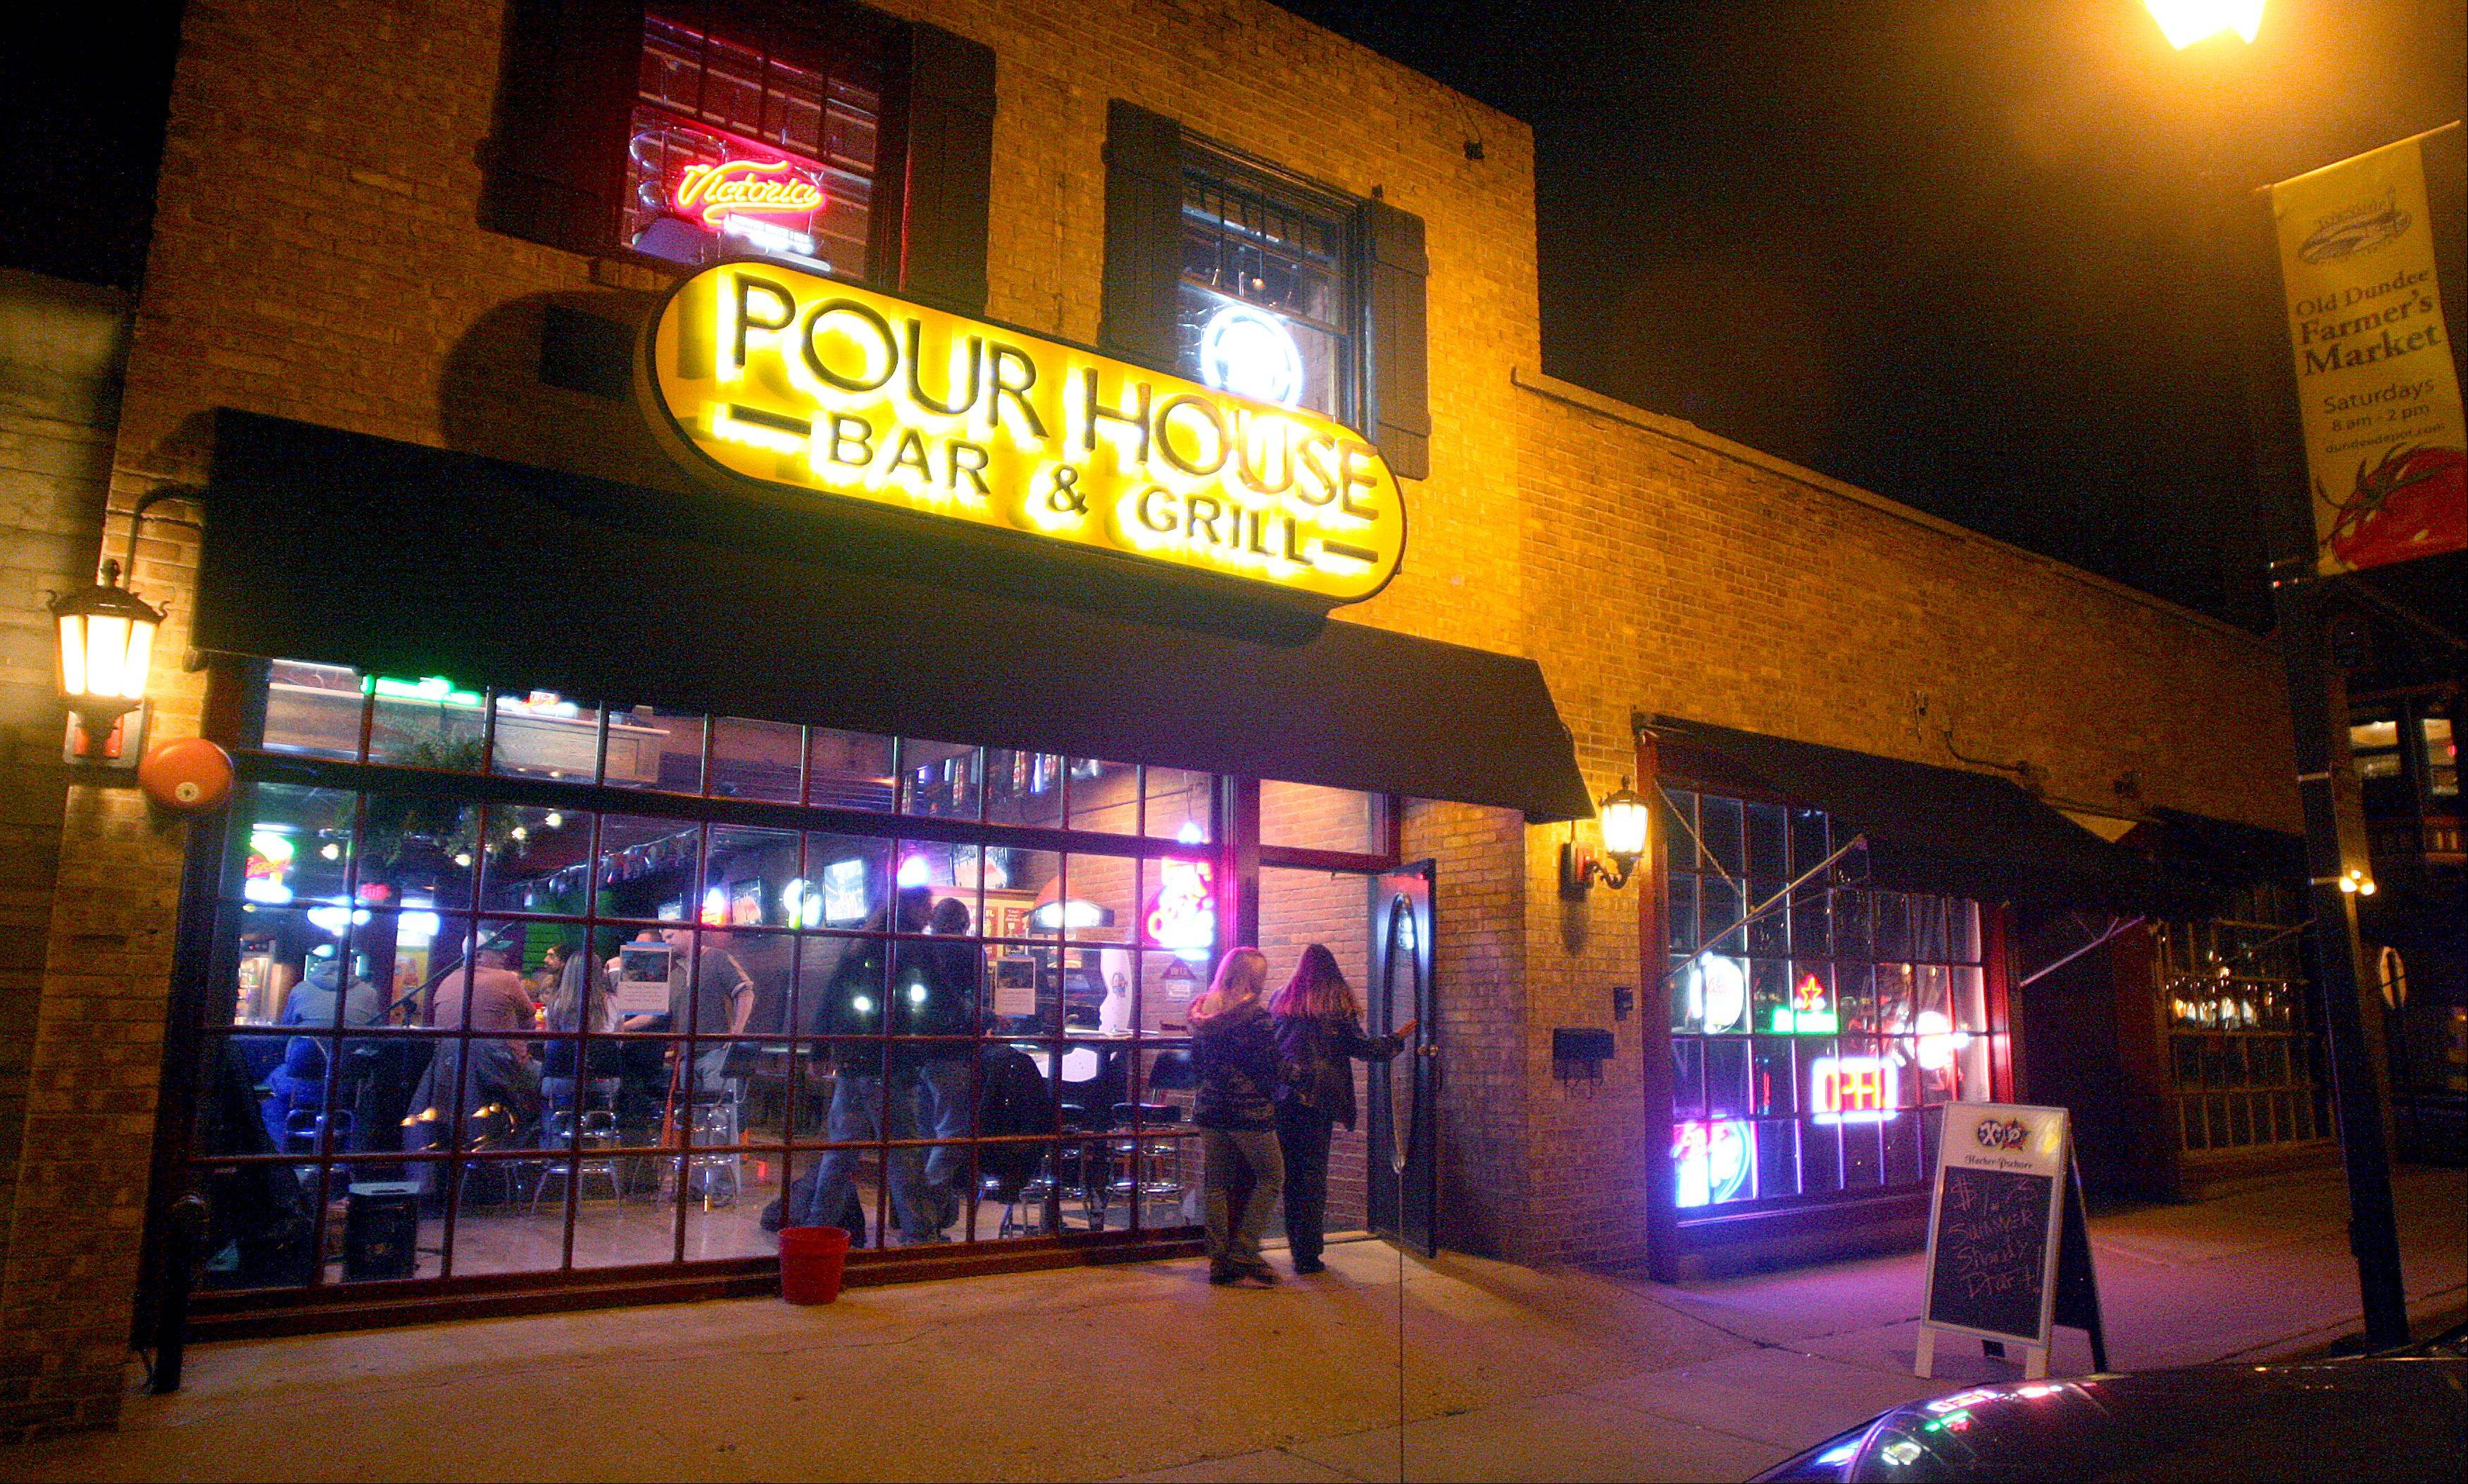 The Pour House Bar & Grill is located along North River Street in East Dundee.